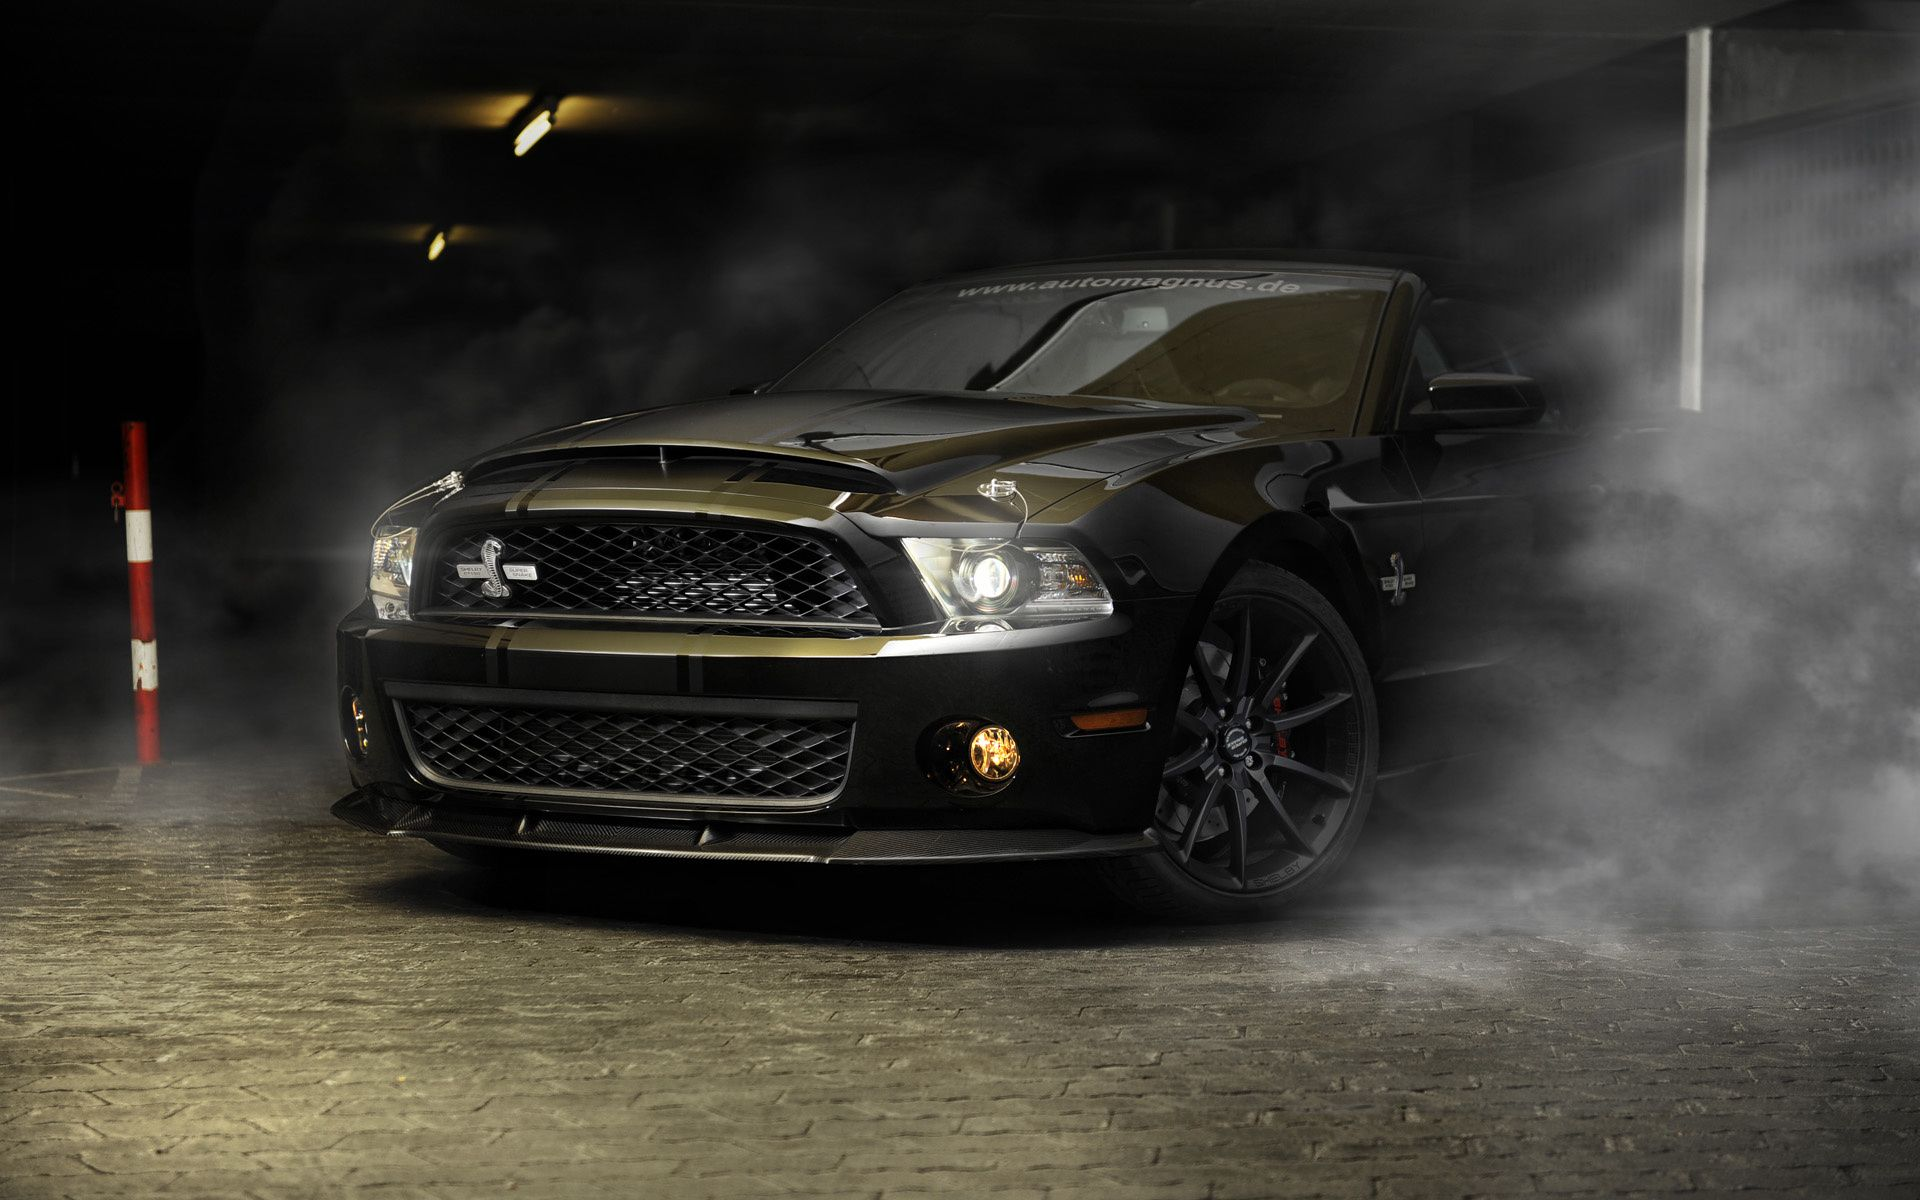 Mustang Wallpapers Full HD wallpaper search pick up